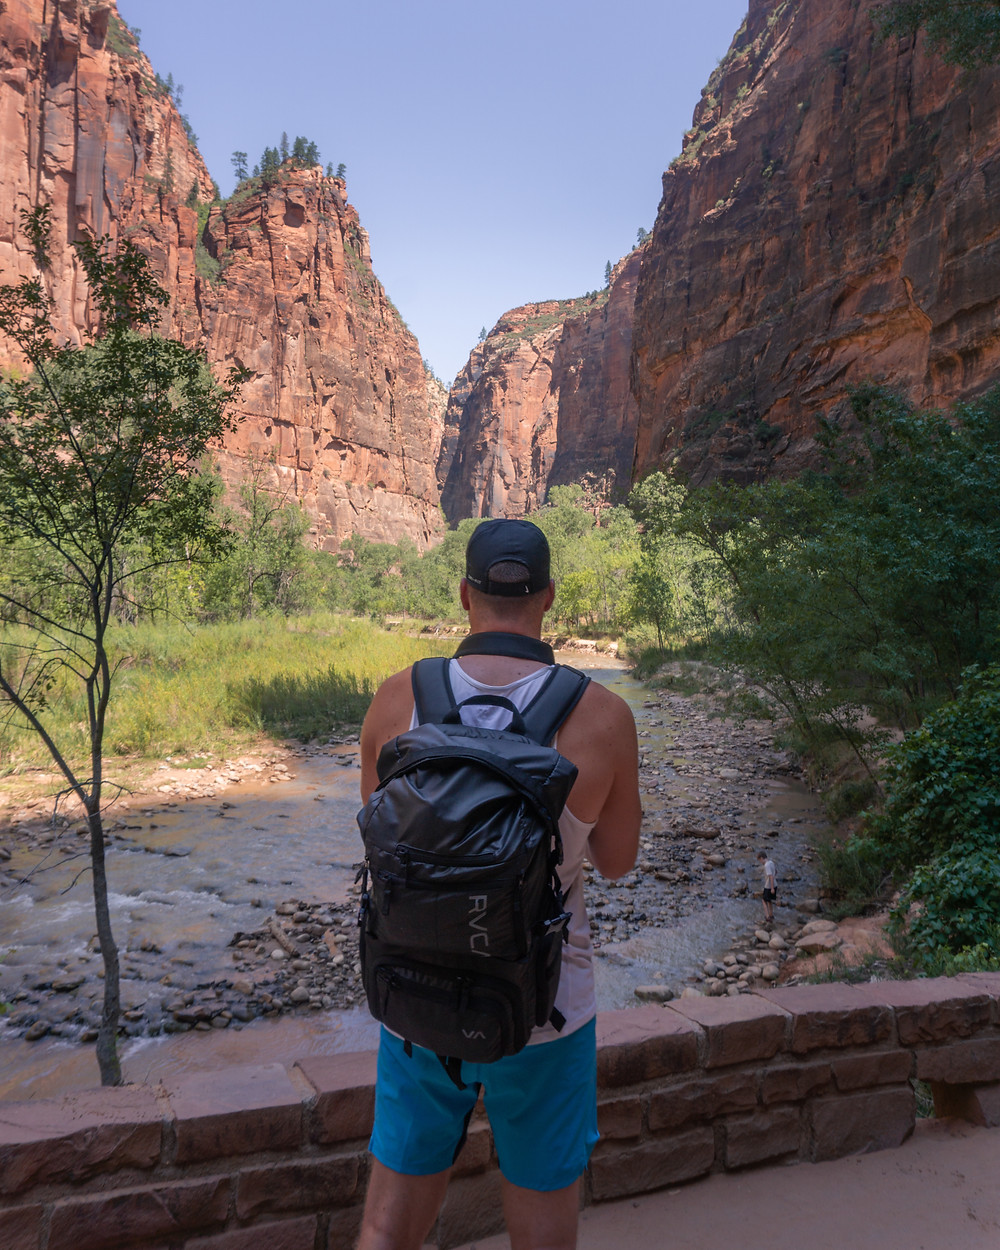 Backpacker taking in the views of Zion national park